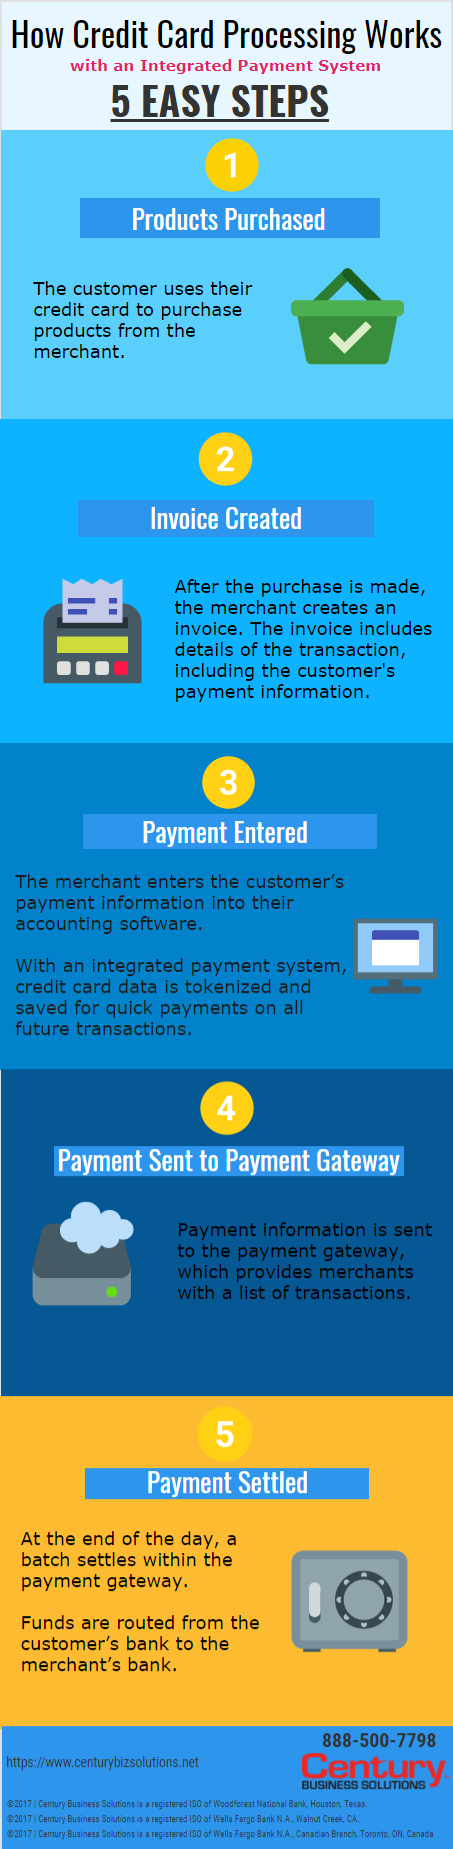 CENTURY BUSINESS SOLUTIONS:how credit card processing works with an integrated payment system -